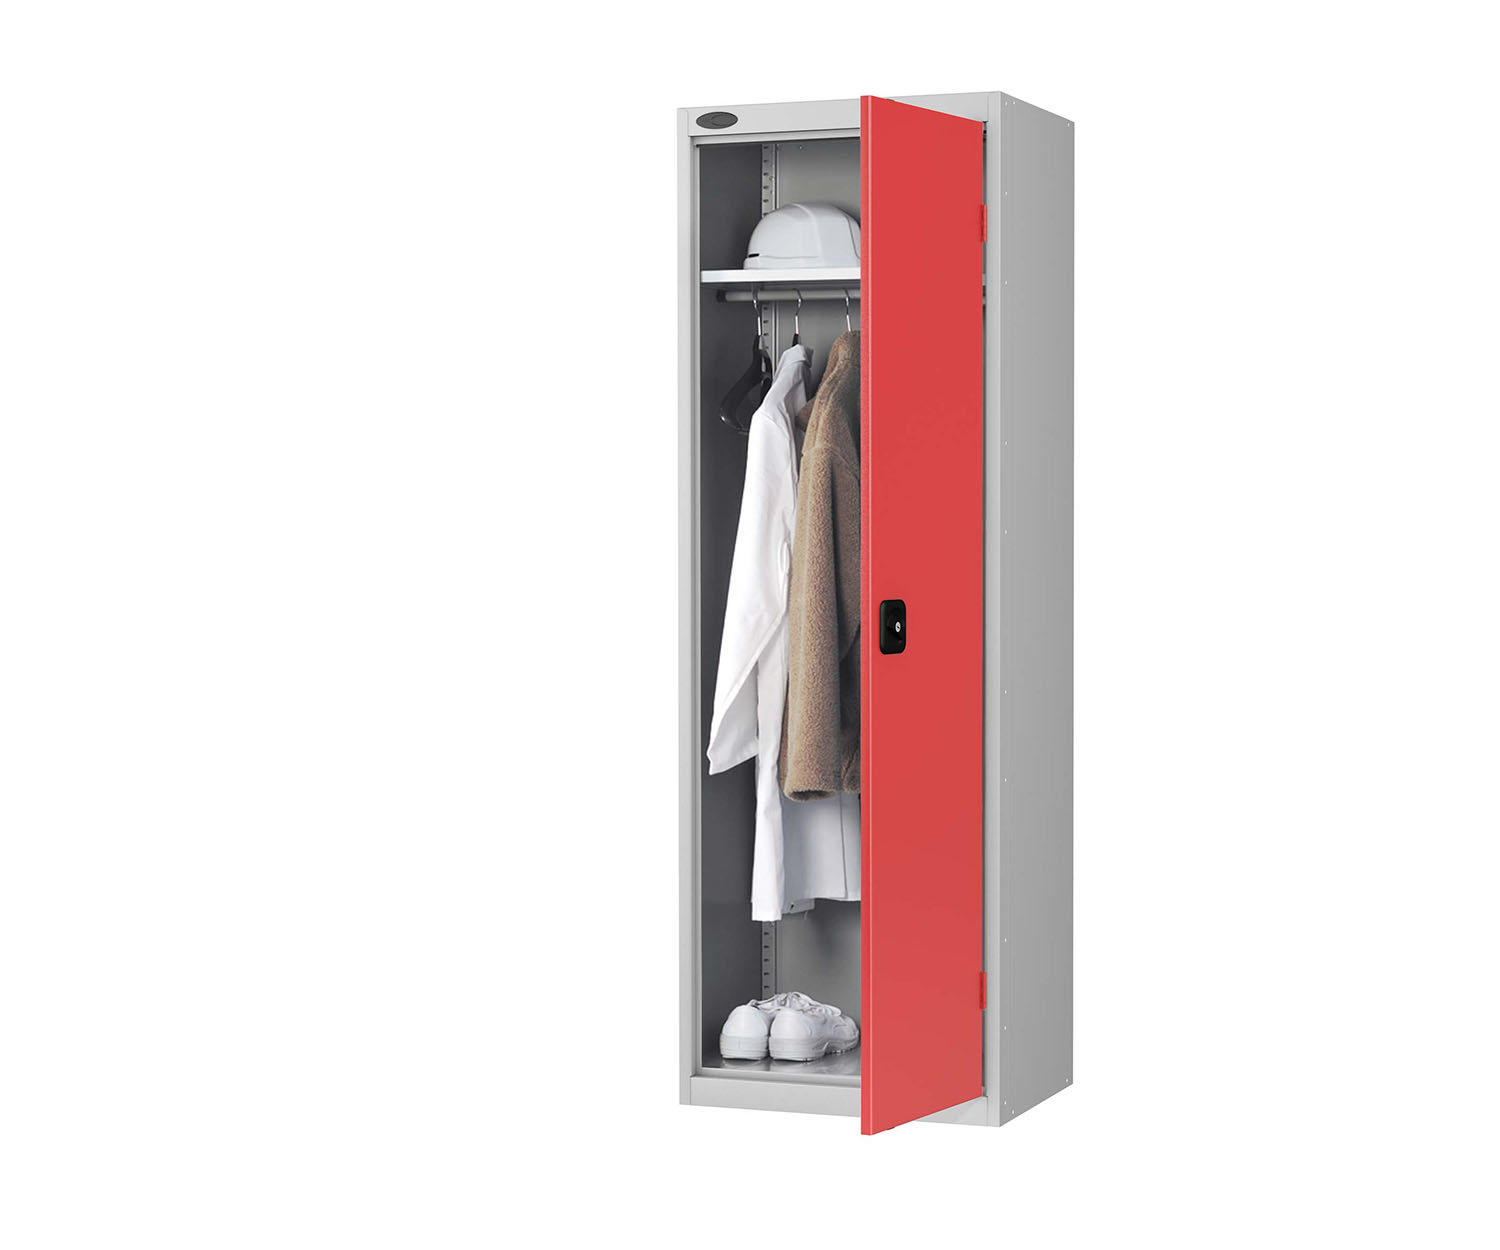 Probe tool slim wardrobe red